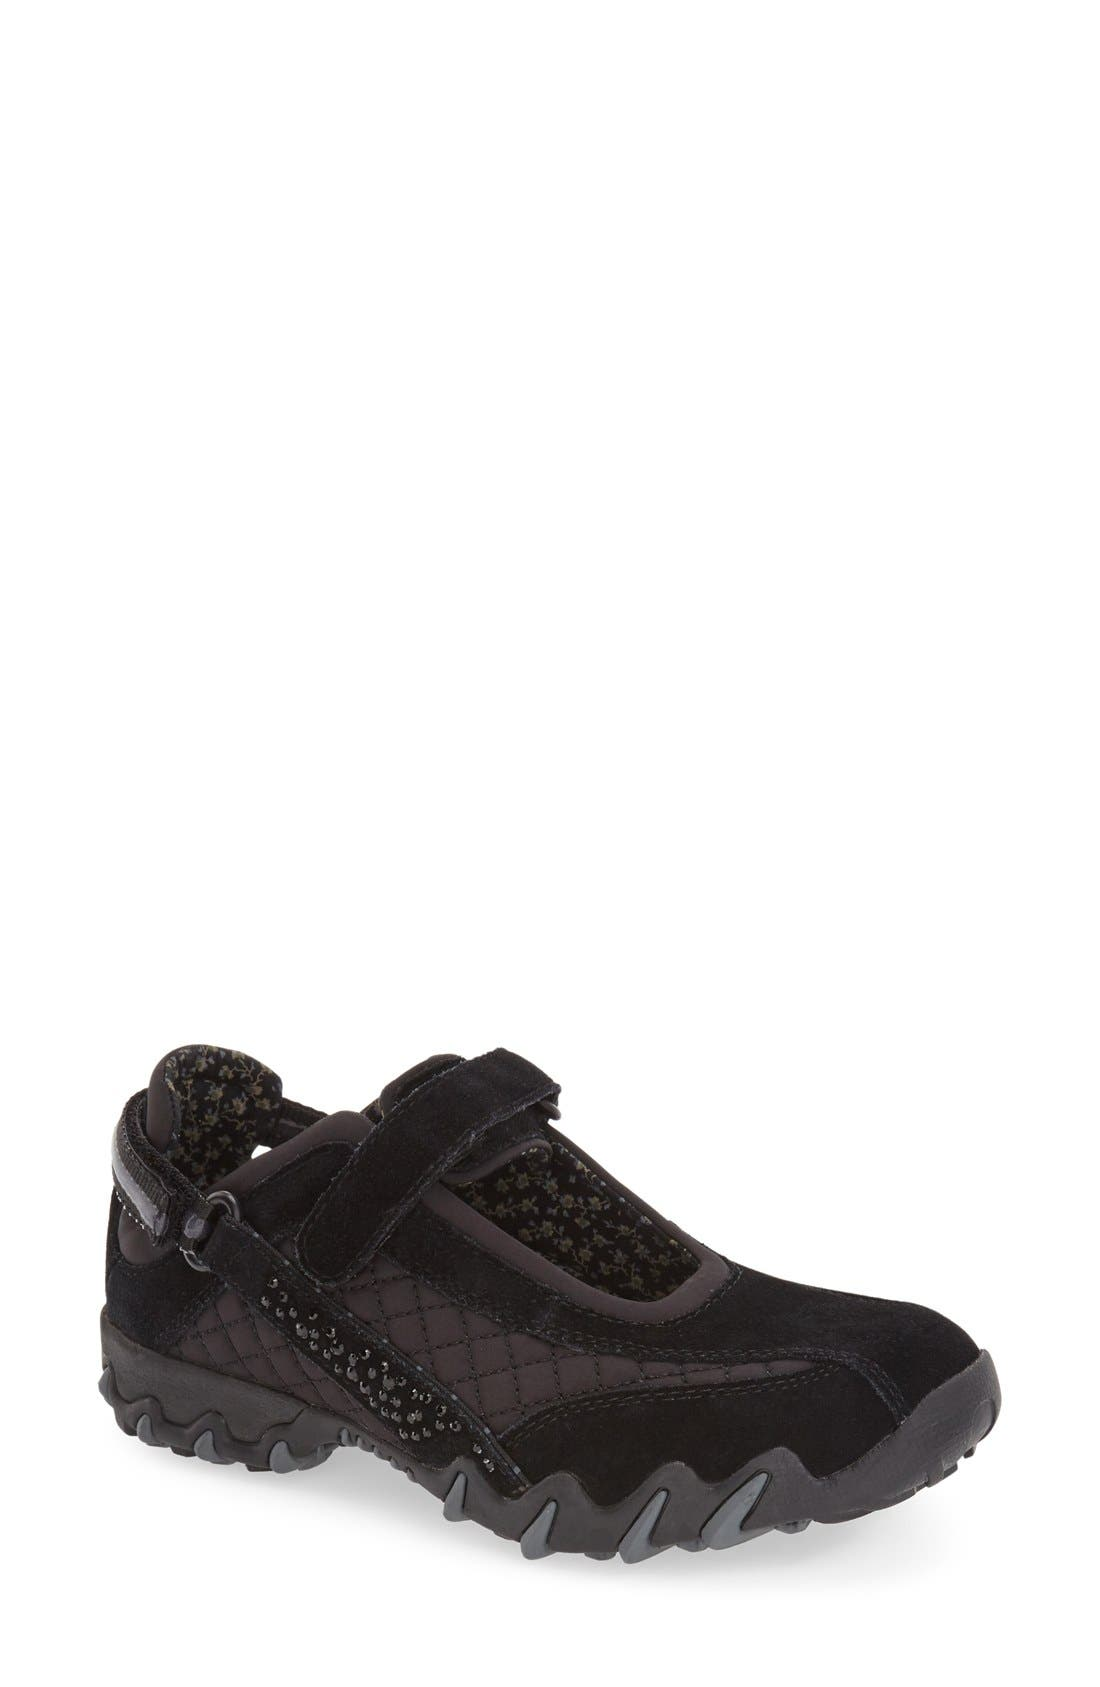 'Niro Diamonds' Sneaker,                         Main,                         color, 011